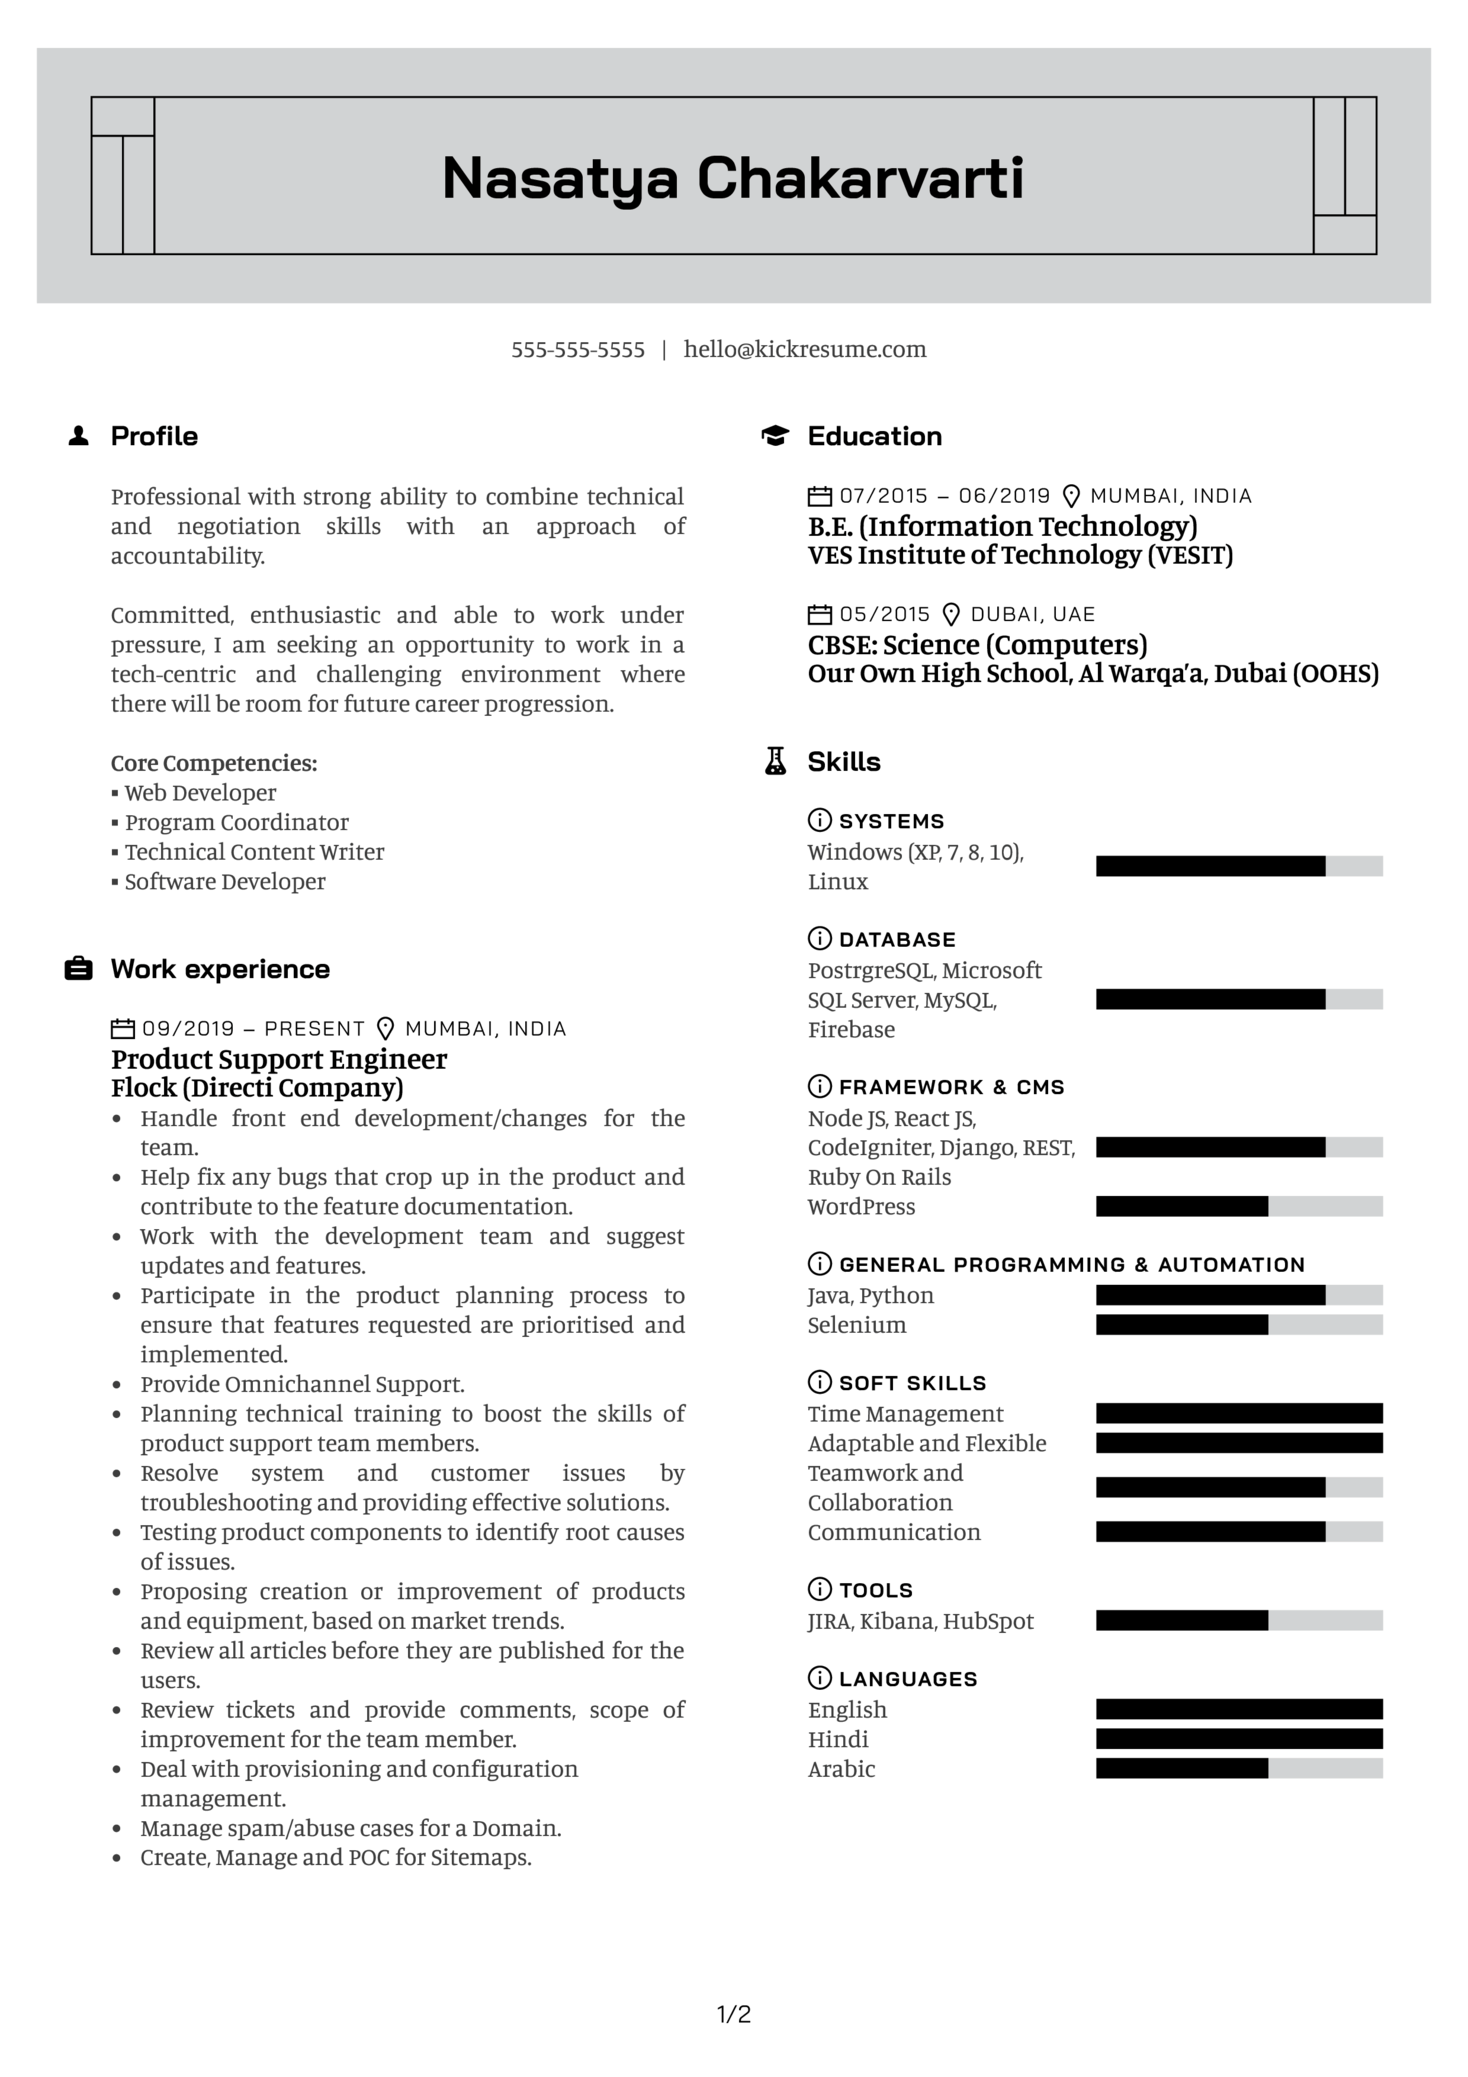 Product Engineer at Flock Resume Sample (Part 1)